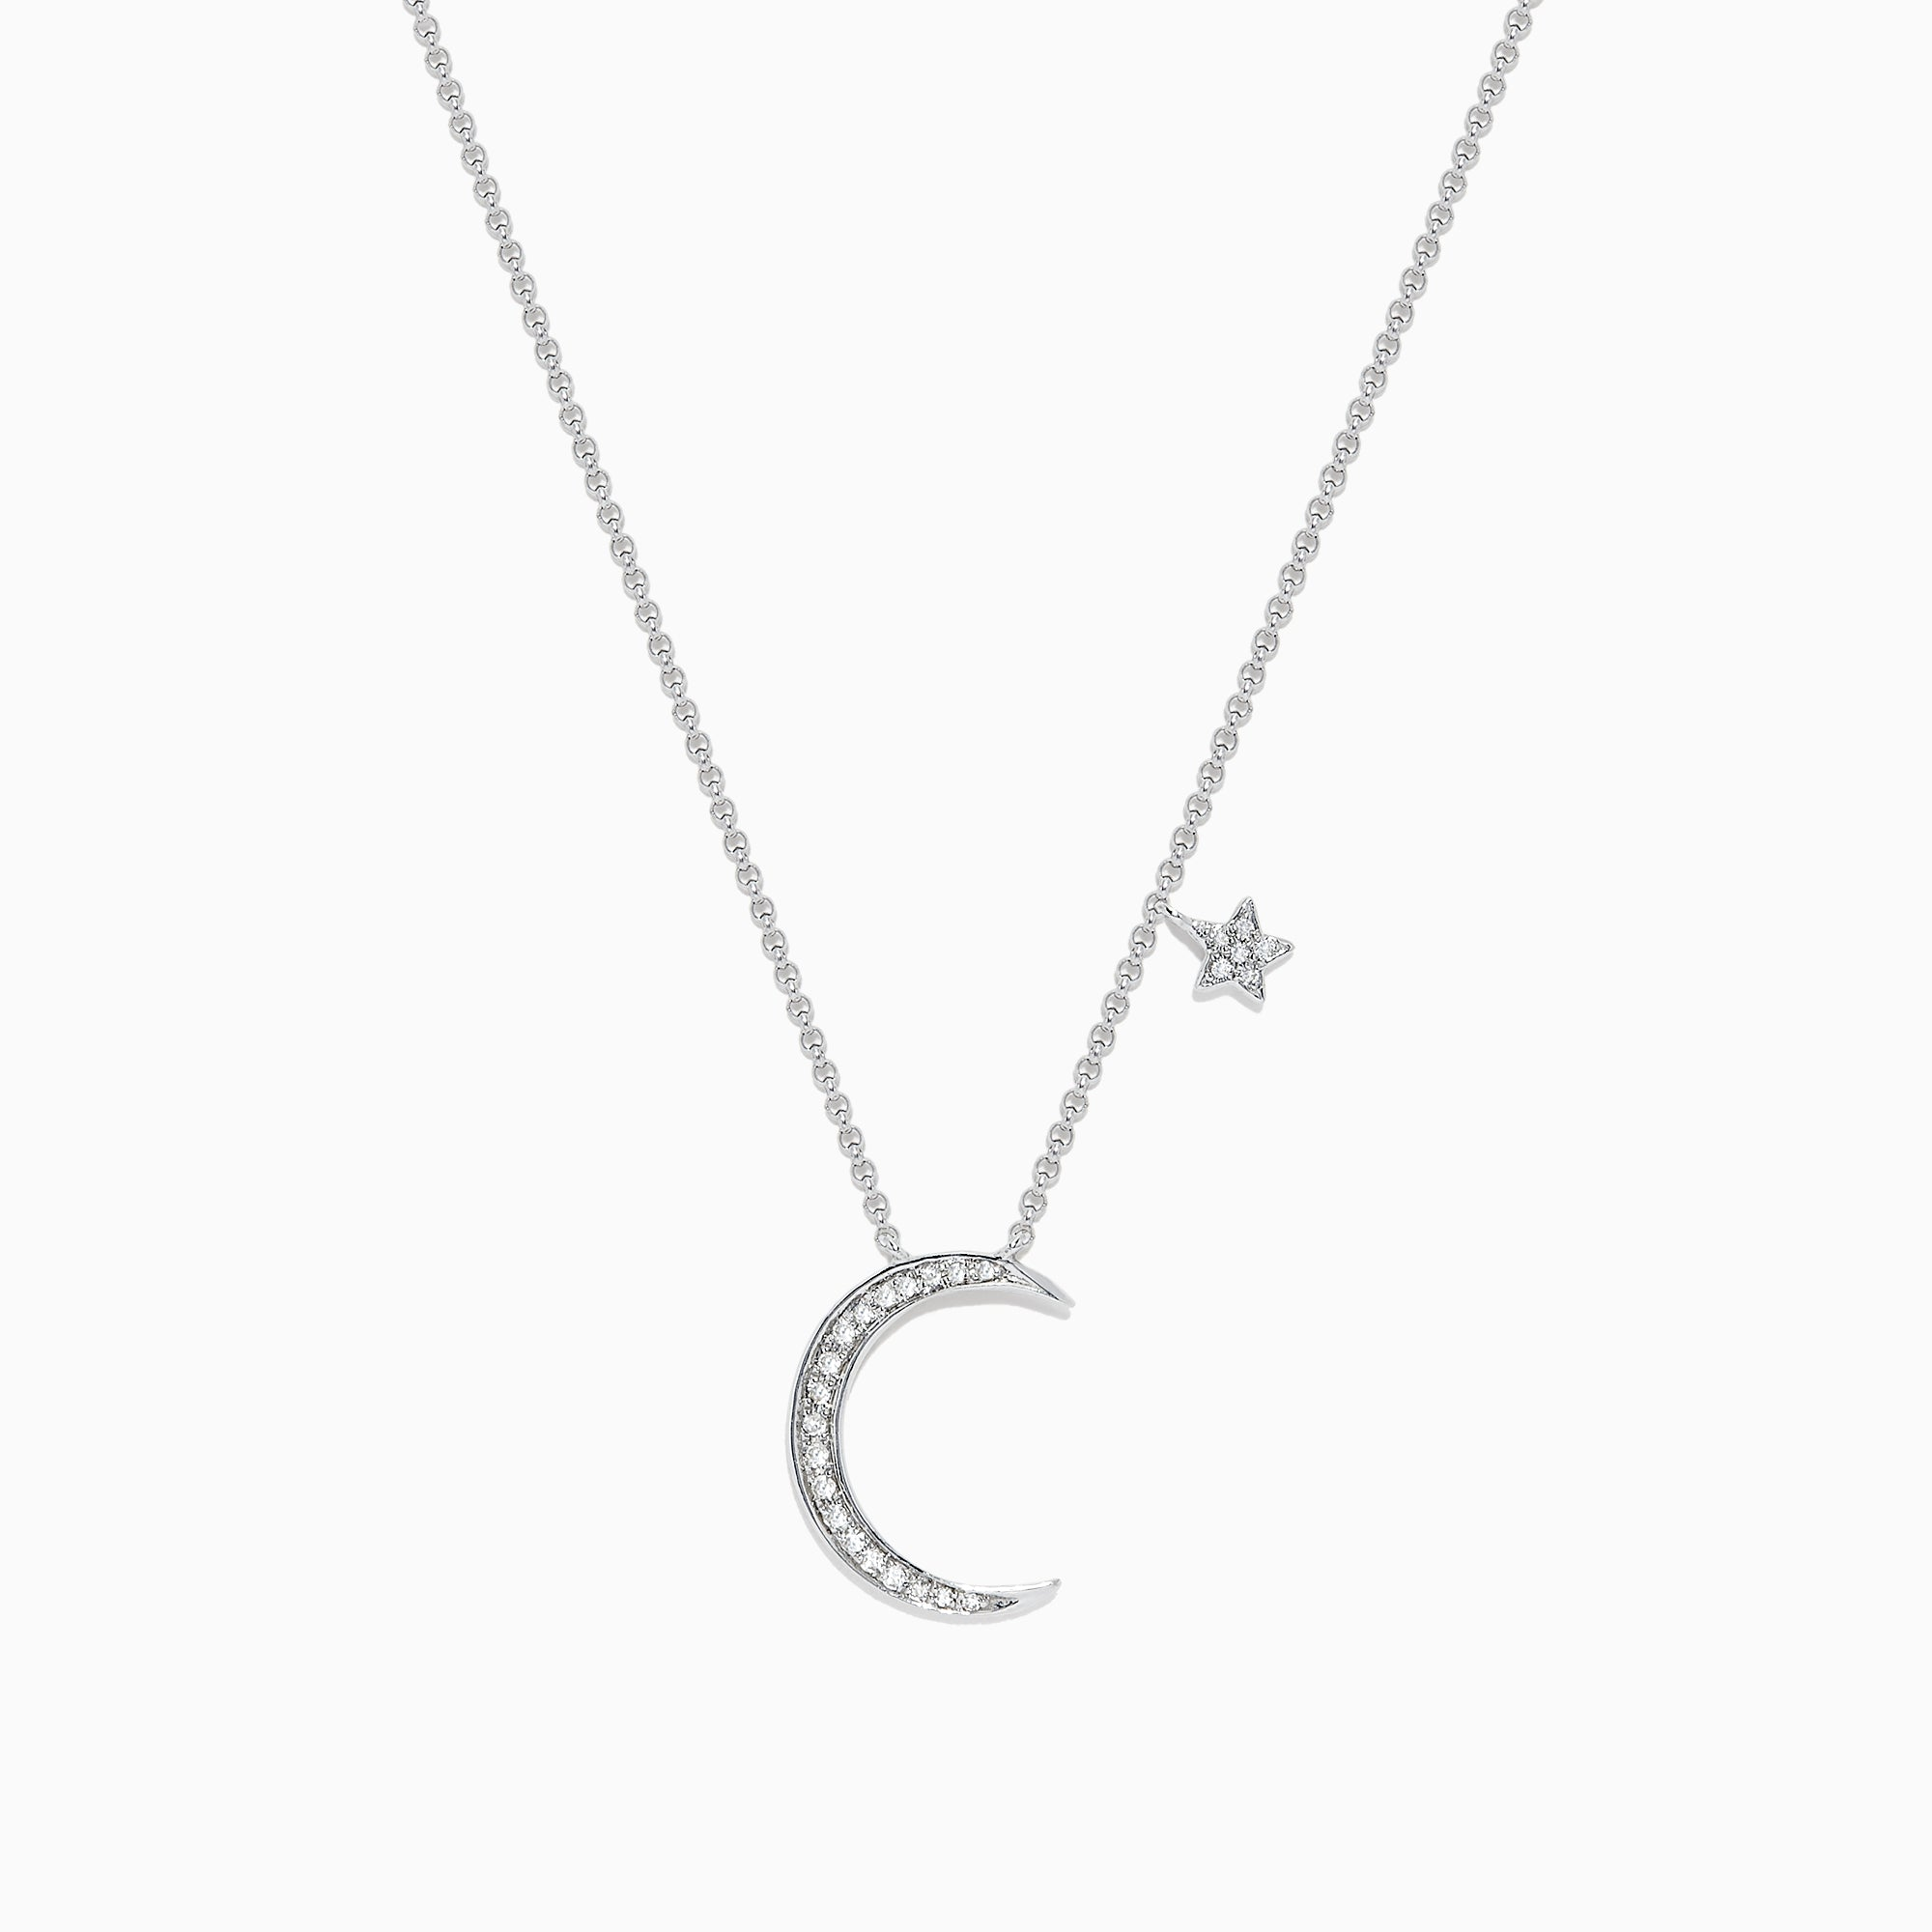 Effy Novelty 14K White Gold Diamond Crescent & Star Necklace, 0.09 TCW